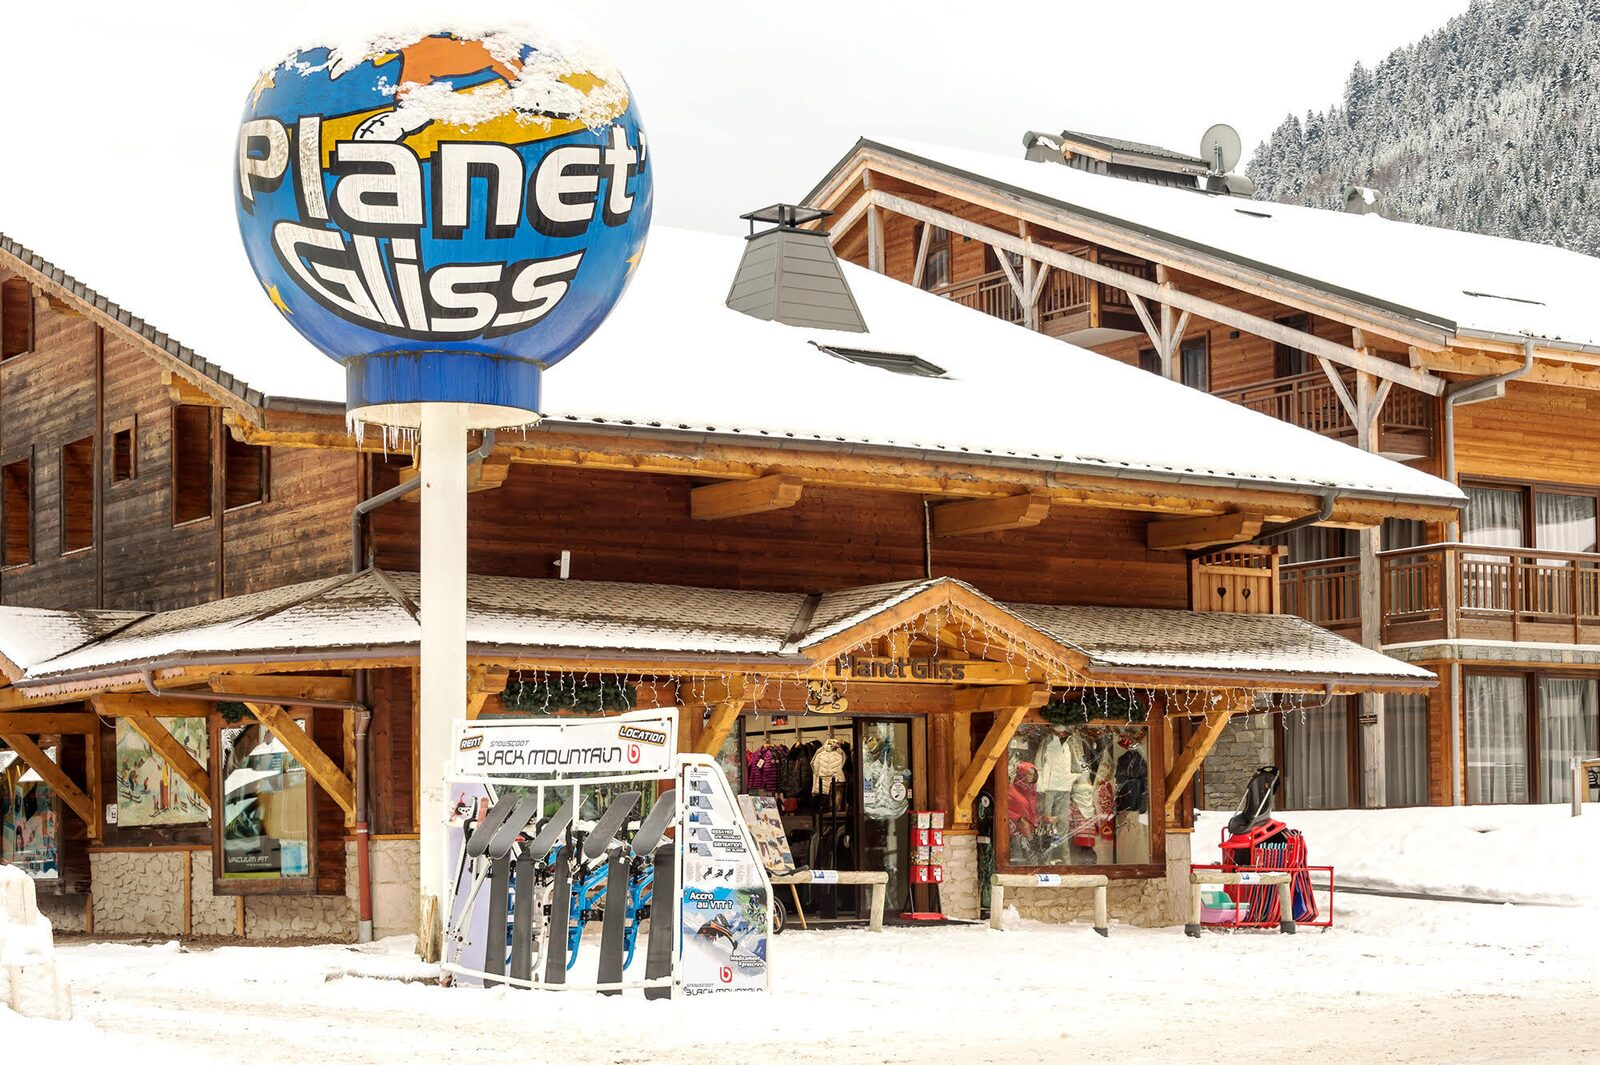 Planet Gliss : location de matériel de ski à la Chapelle d'Abondance